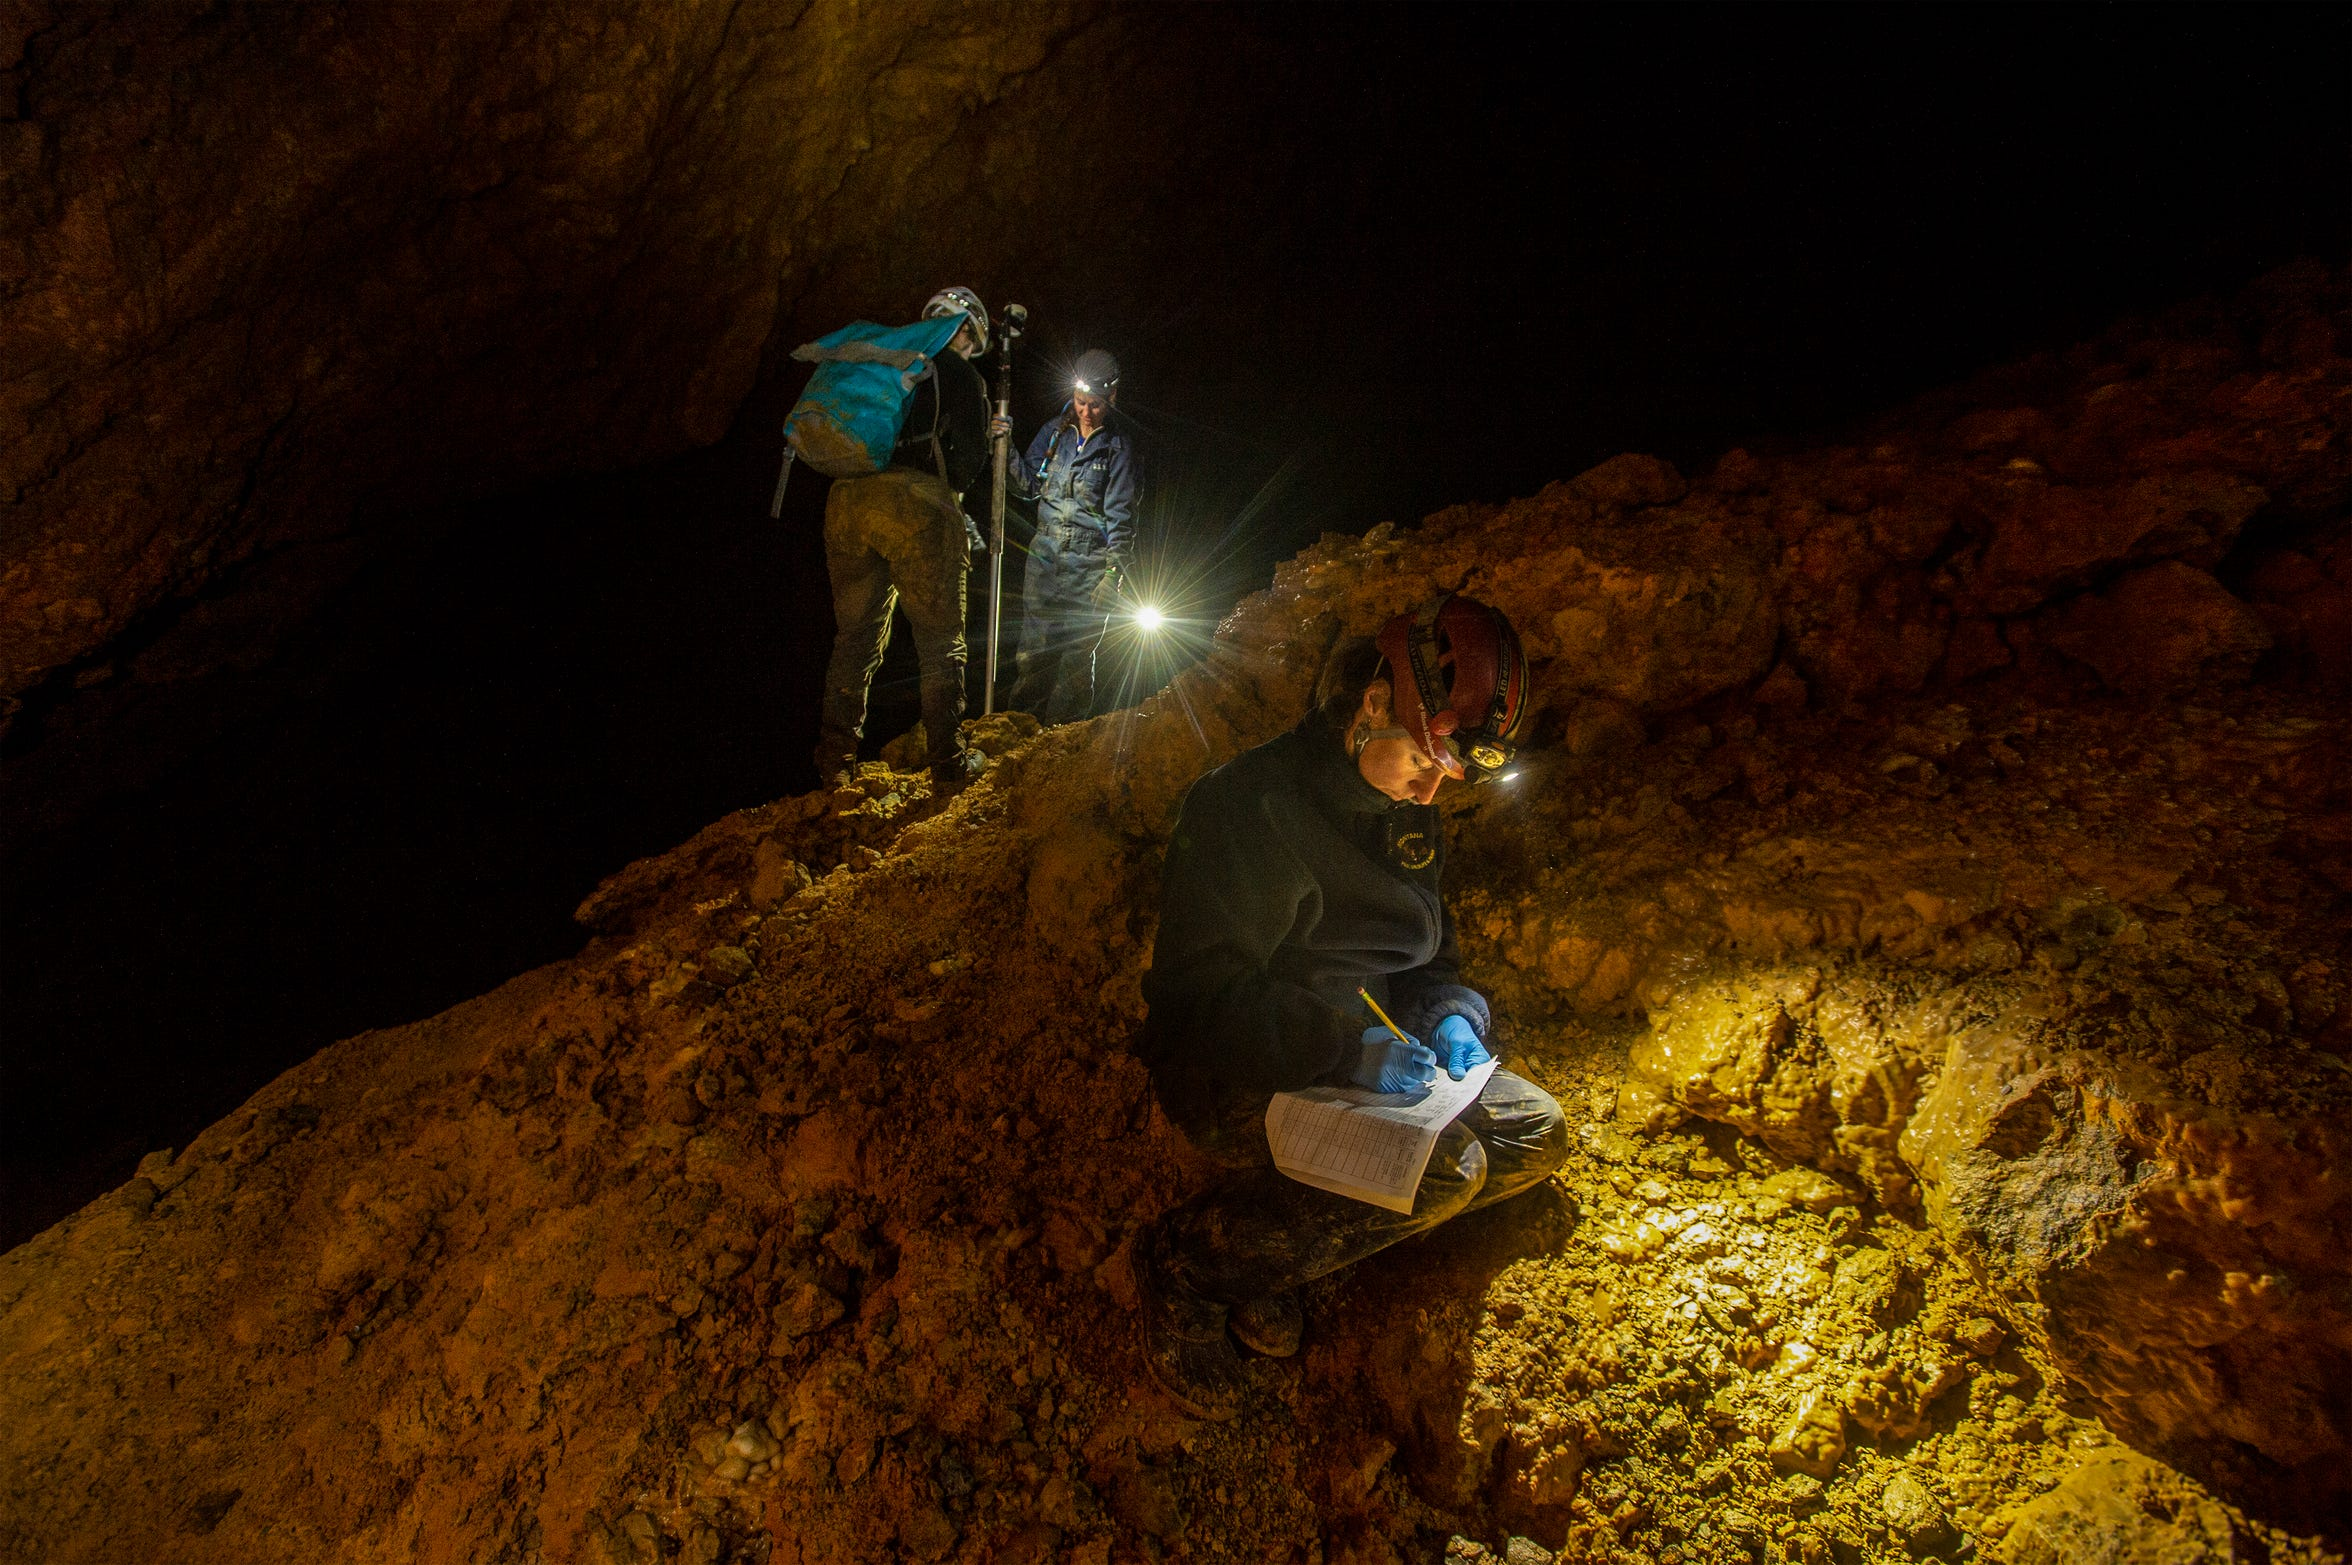 Lauri Hanauska-Brown, Non-Game Wildlife Management Bureau chief for Montana Fish, Wildlife & Parks, collects soil samples from the Cathedral Room in Lick Creek Cave in the Helena-Lewis and Clark National Forest in early April.  Hanauska-Brown led a team into the cave to test the bat population for white-nose syndrome, which is caused by Pseudogymnoascus destructans, a fungus that can be fatal to bats.